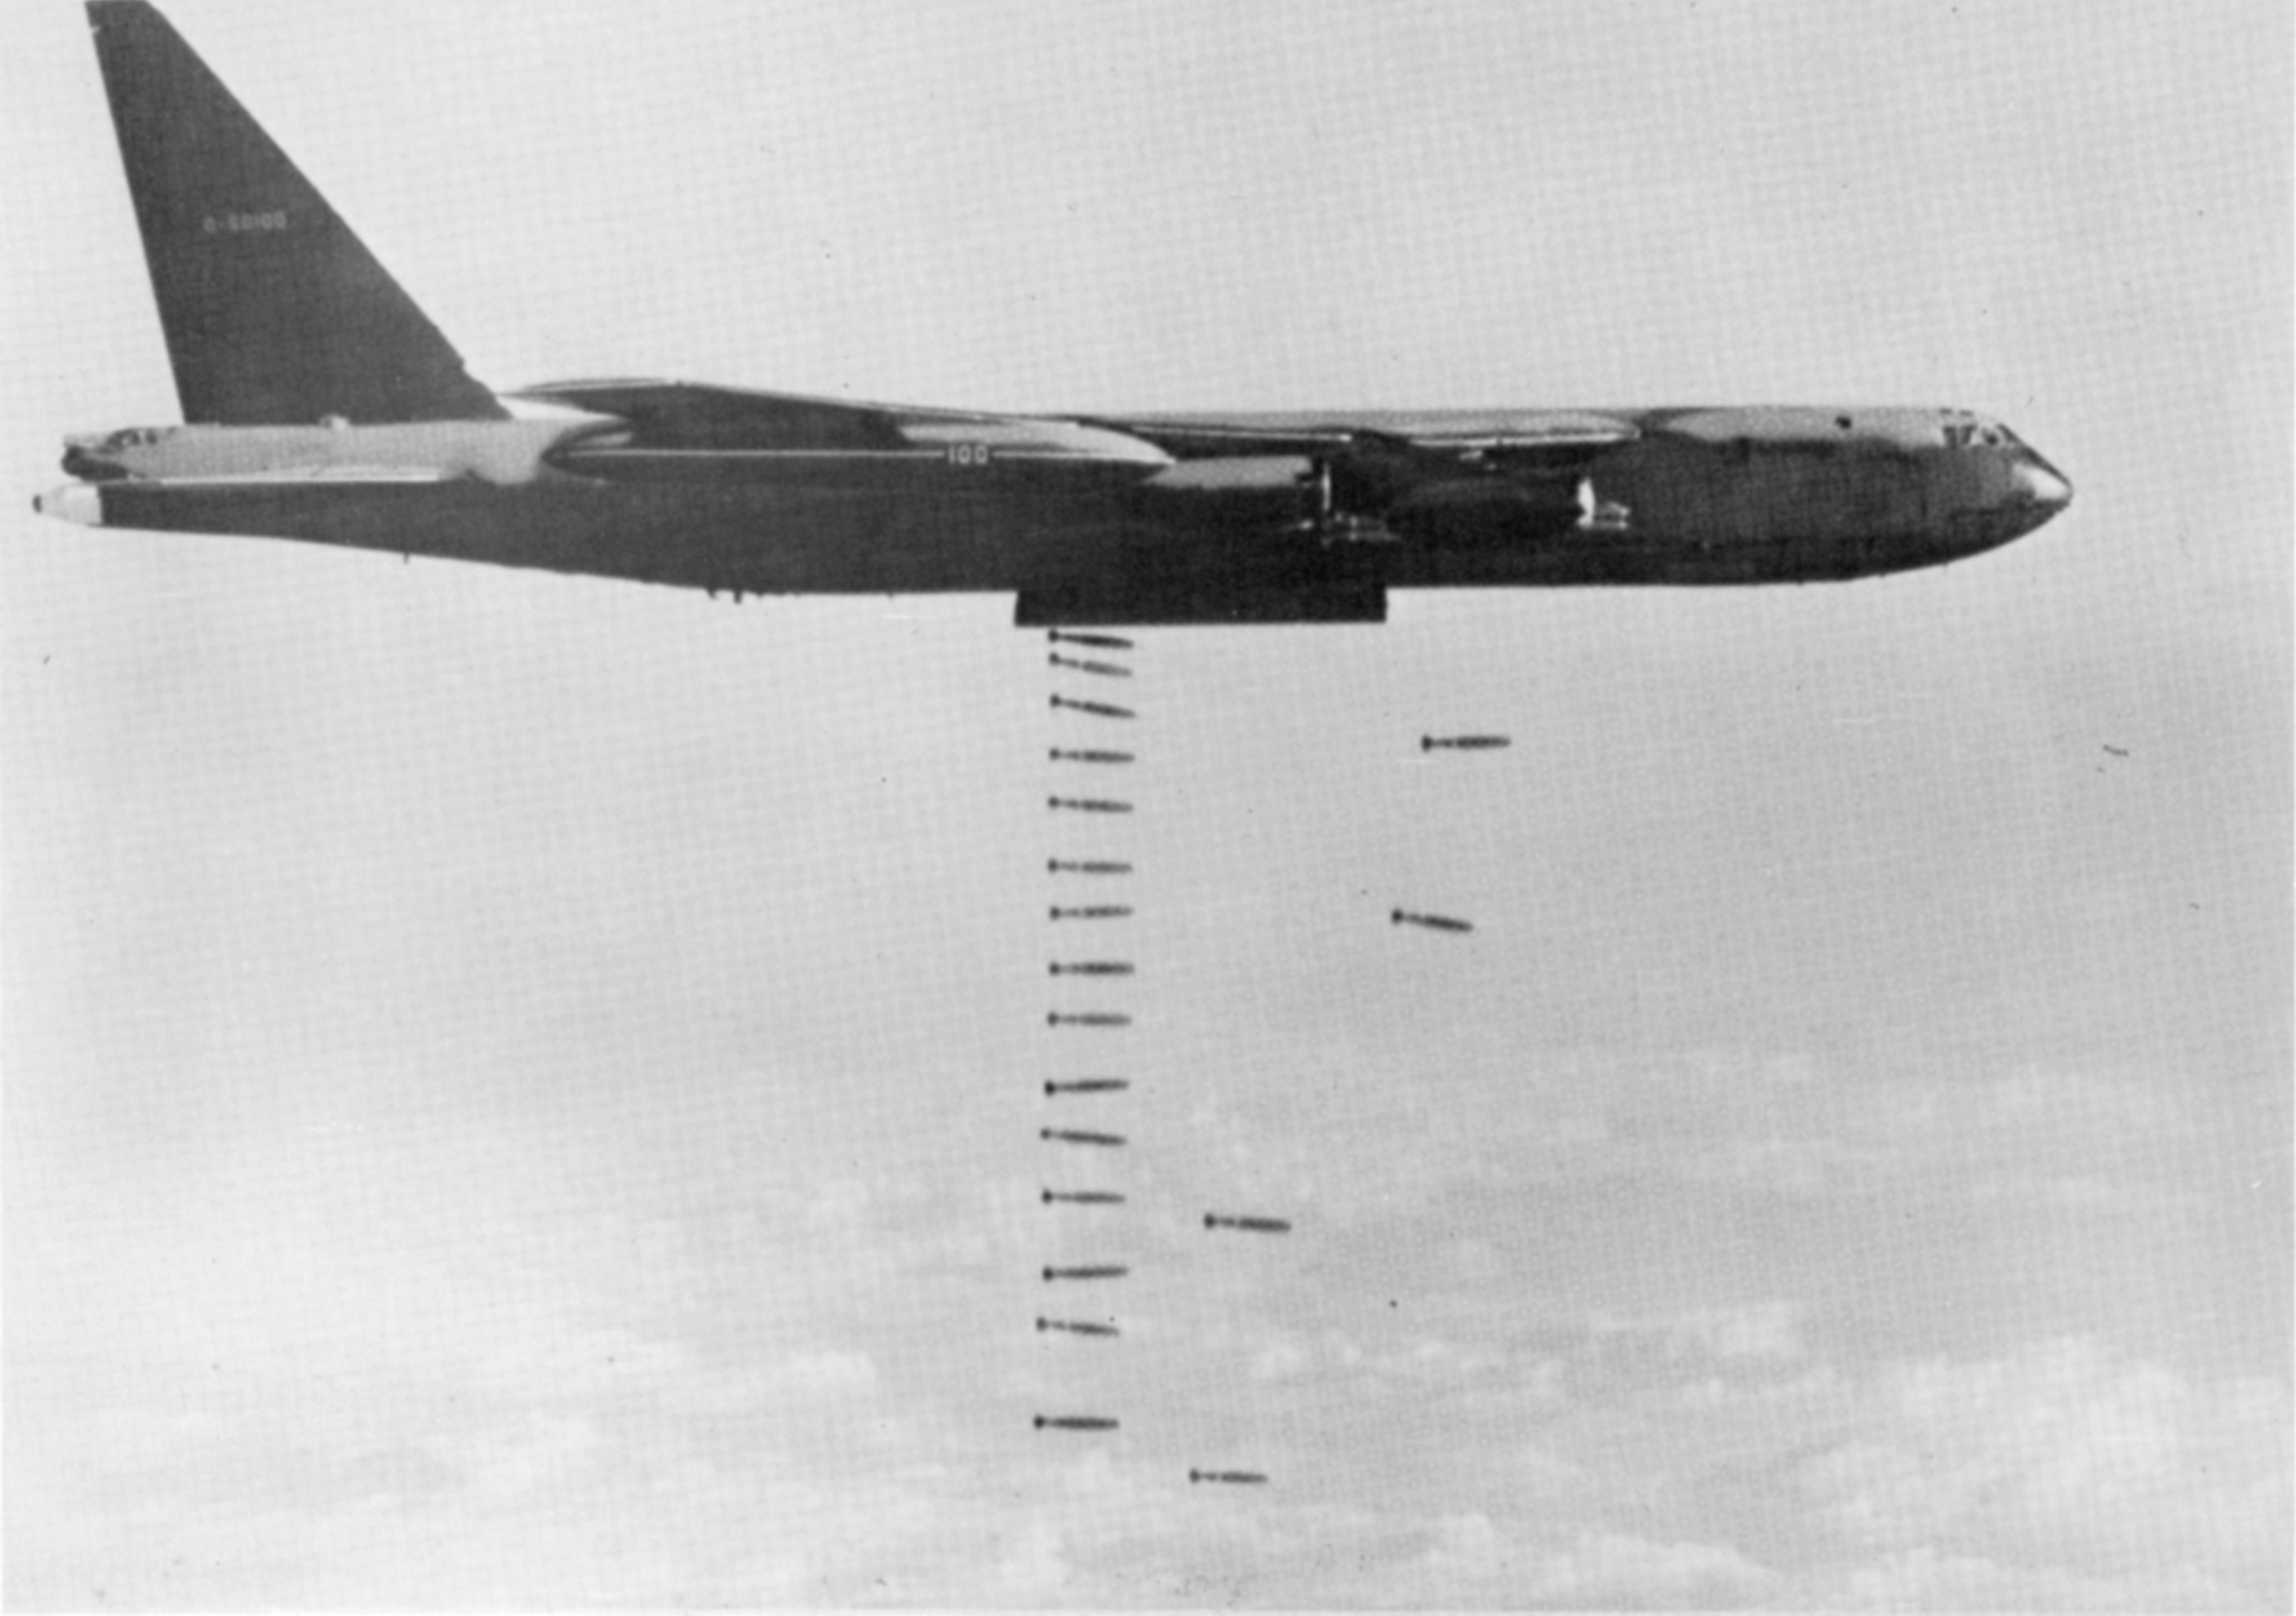 These Madmen Flew B-52 Bombers at Wave-Top Heights - Warrior Maven